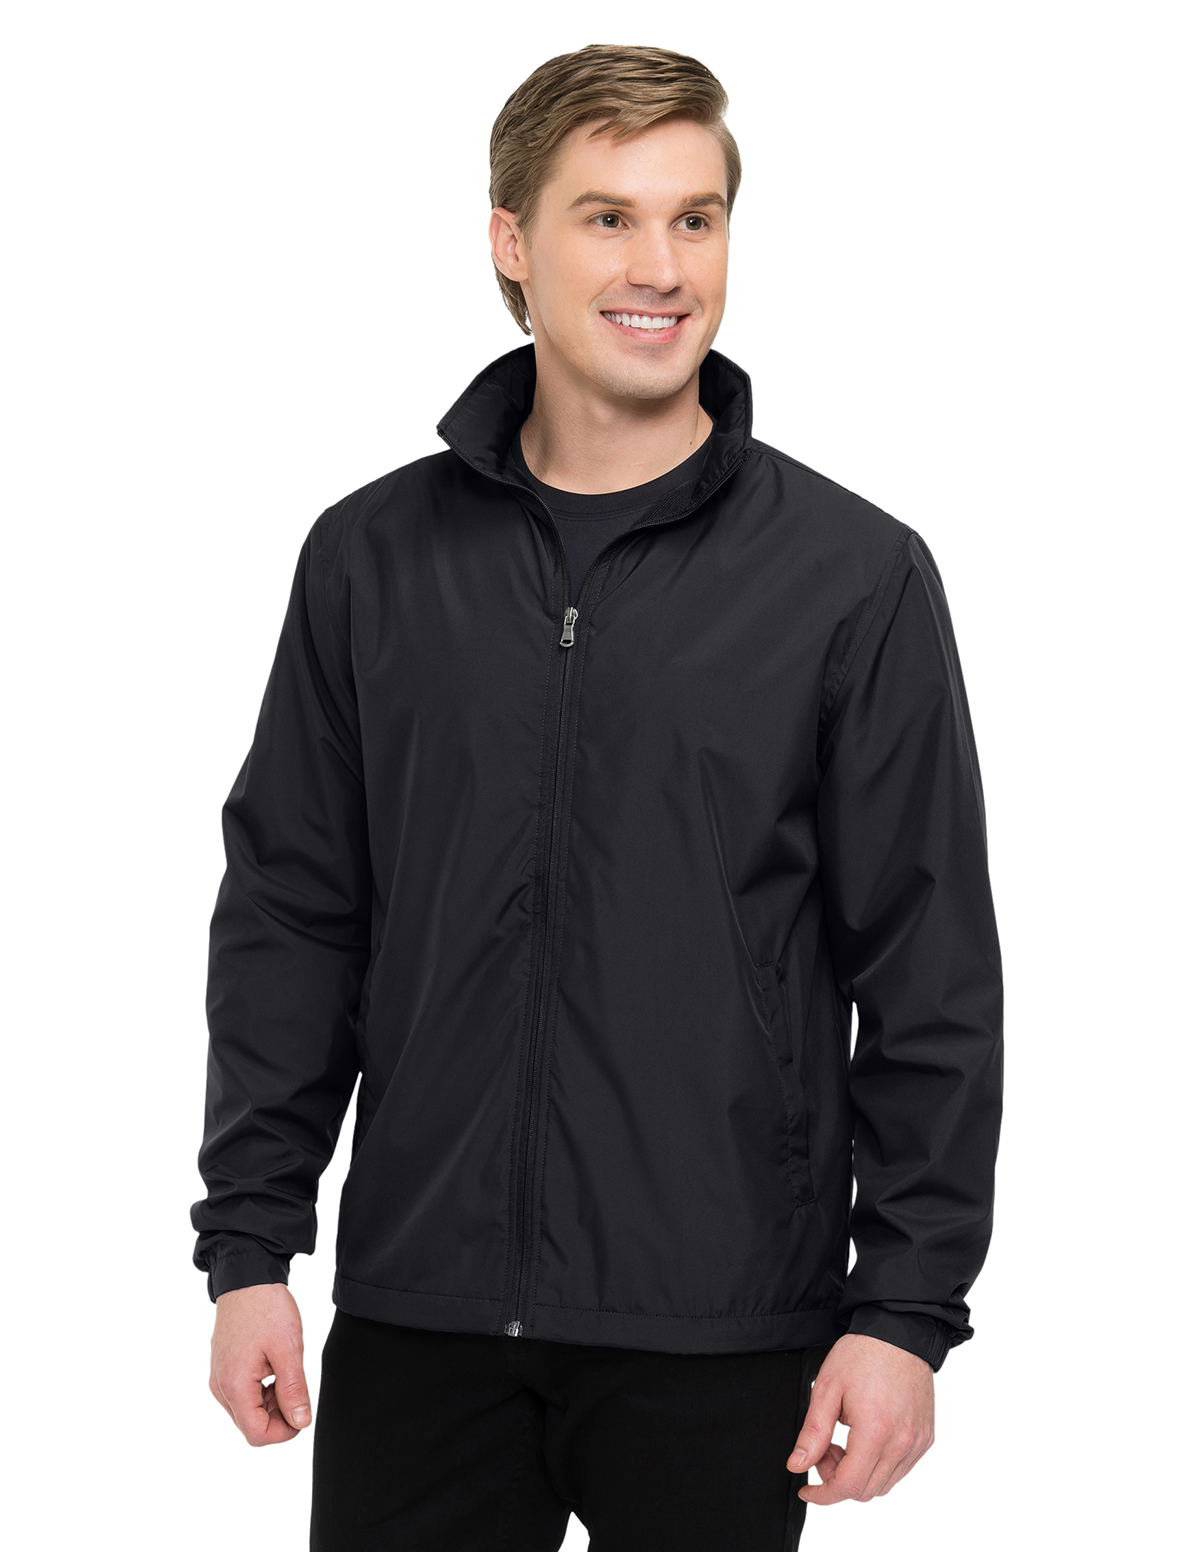 Tri-Mountain J1400 - Vital LWJ Men's 100% Polyester Lightweight Jacket